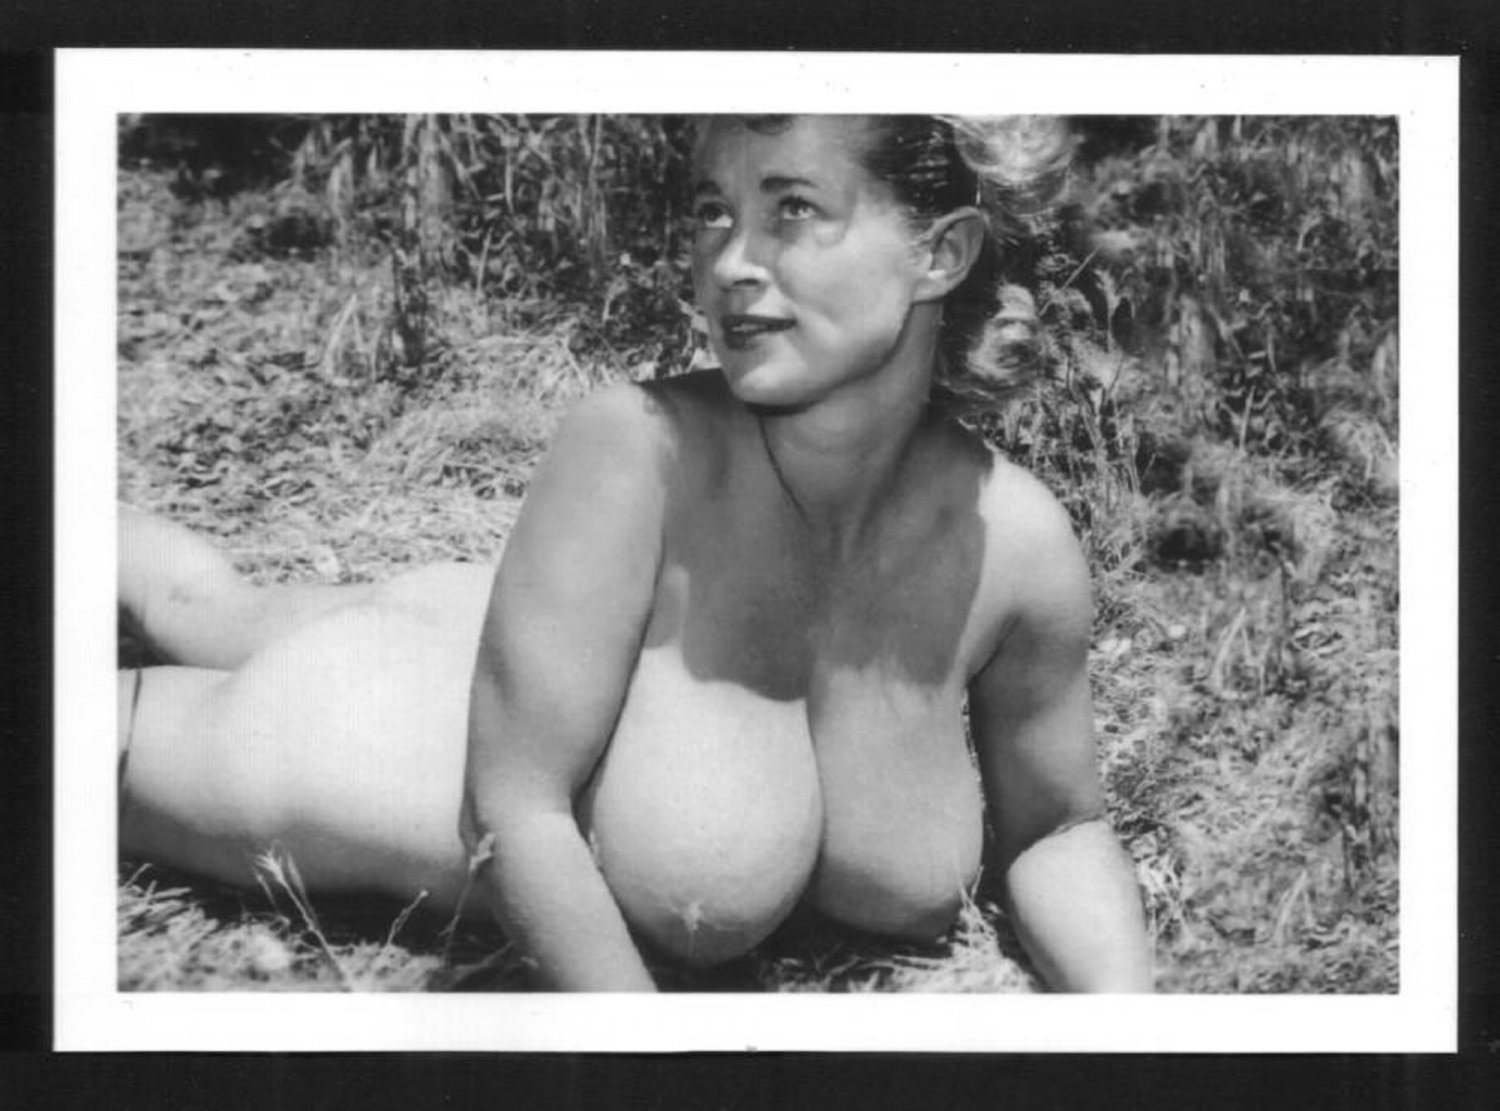 VIRGINIA BELL TOPLESS NUDE HUGE BREASTS NEW REPRINT 5 X 7 #193